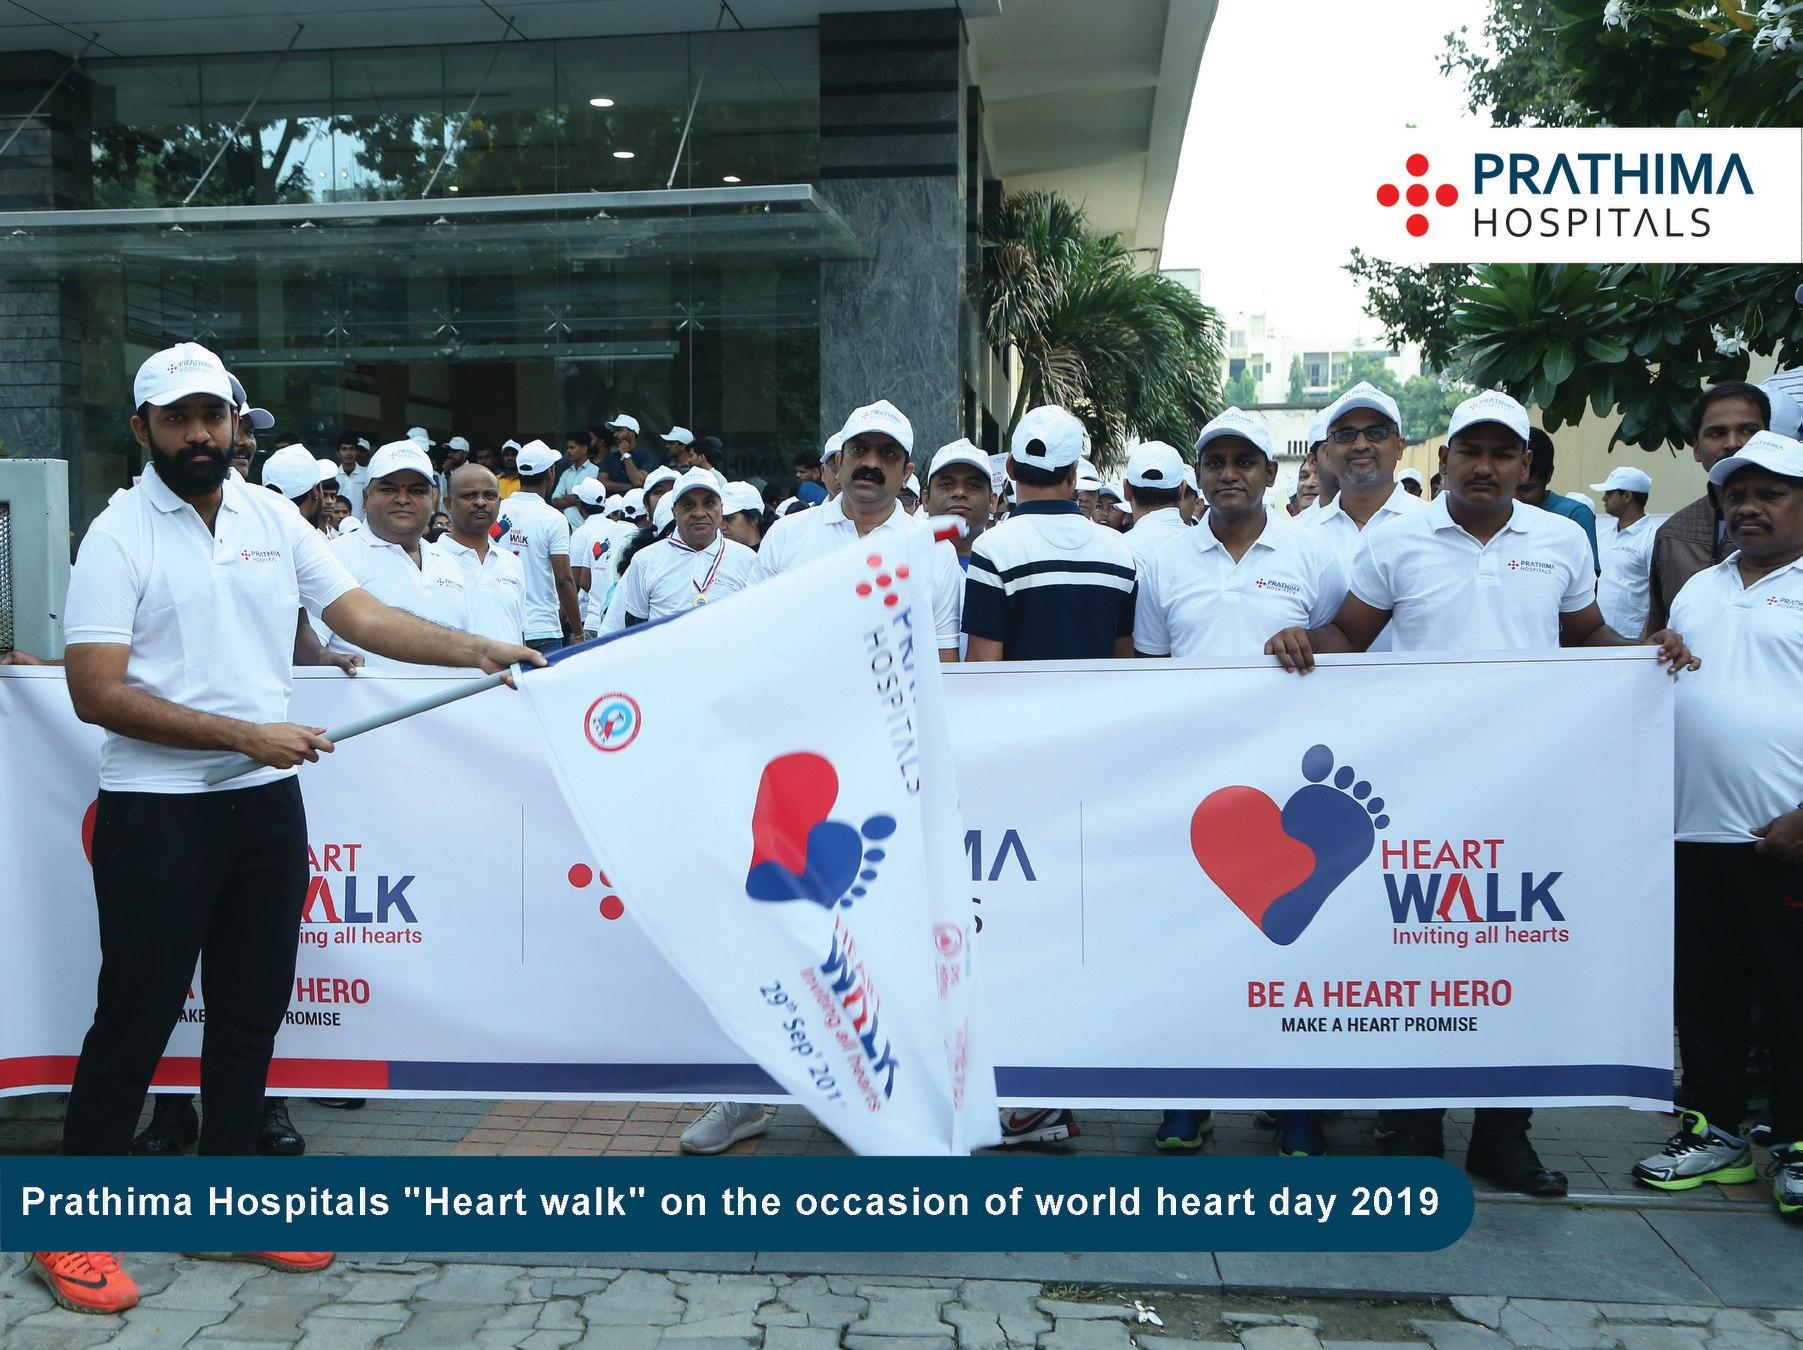 Heart Walk at Prathima Hospitals